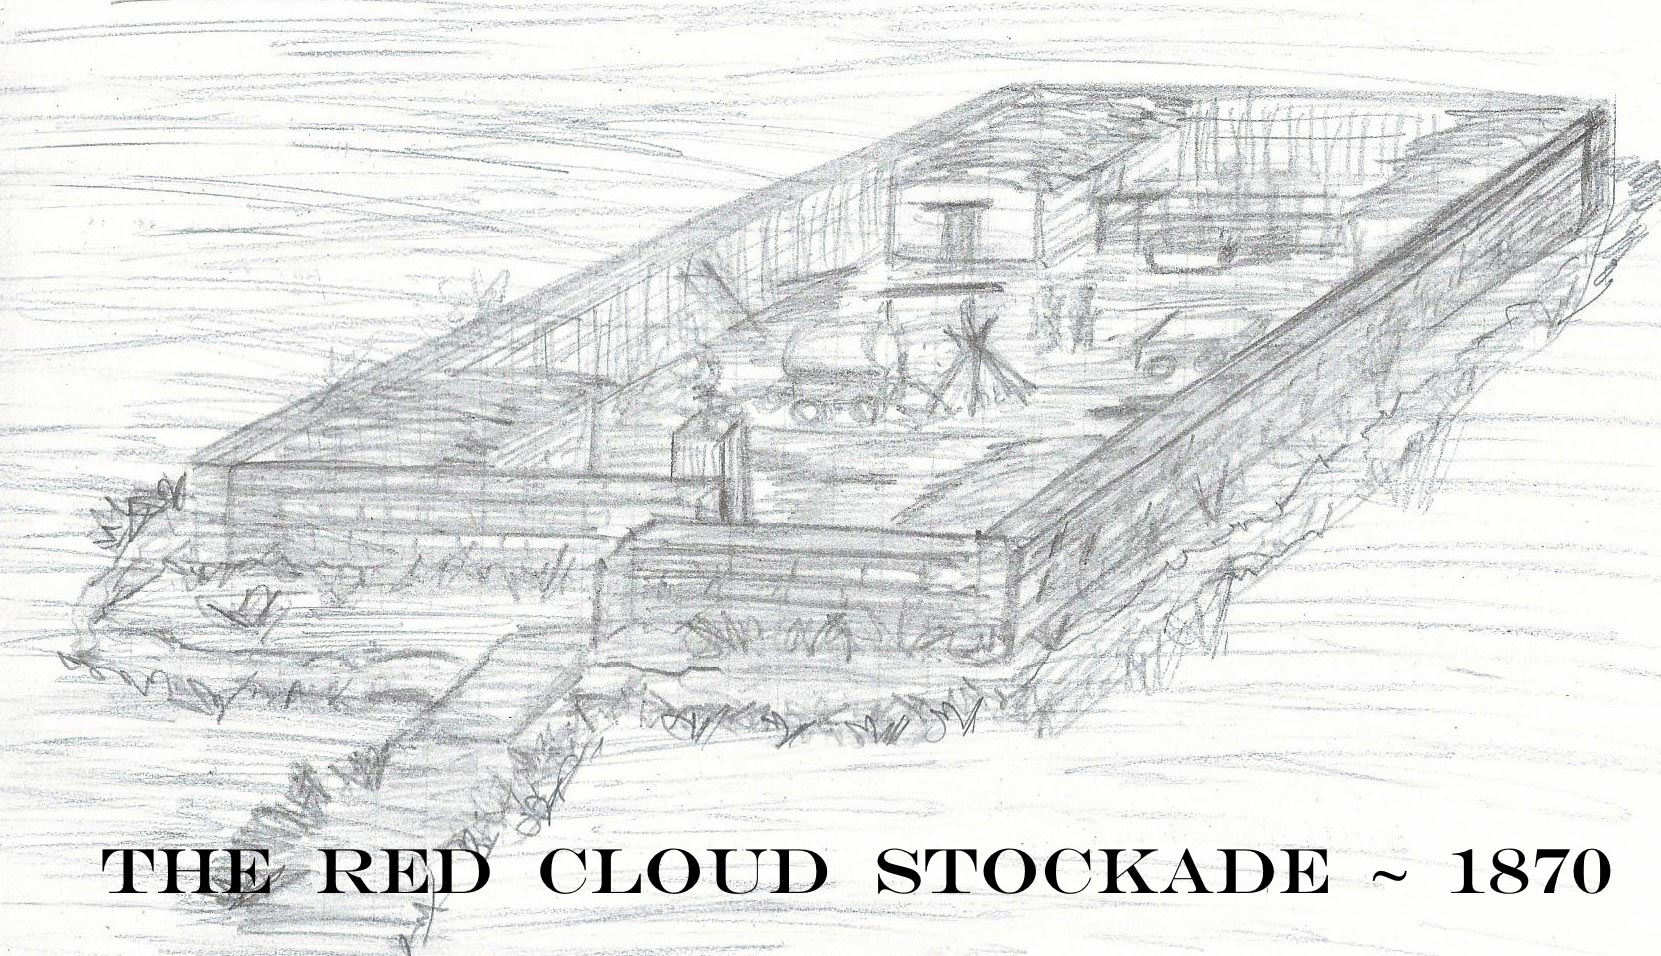 Stockade-label